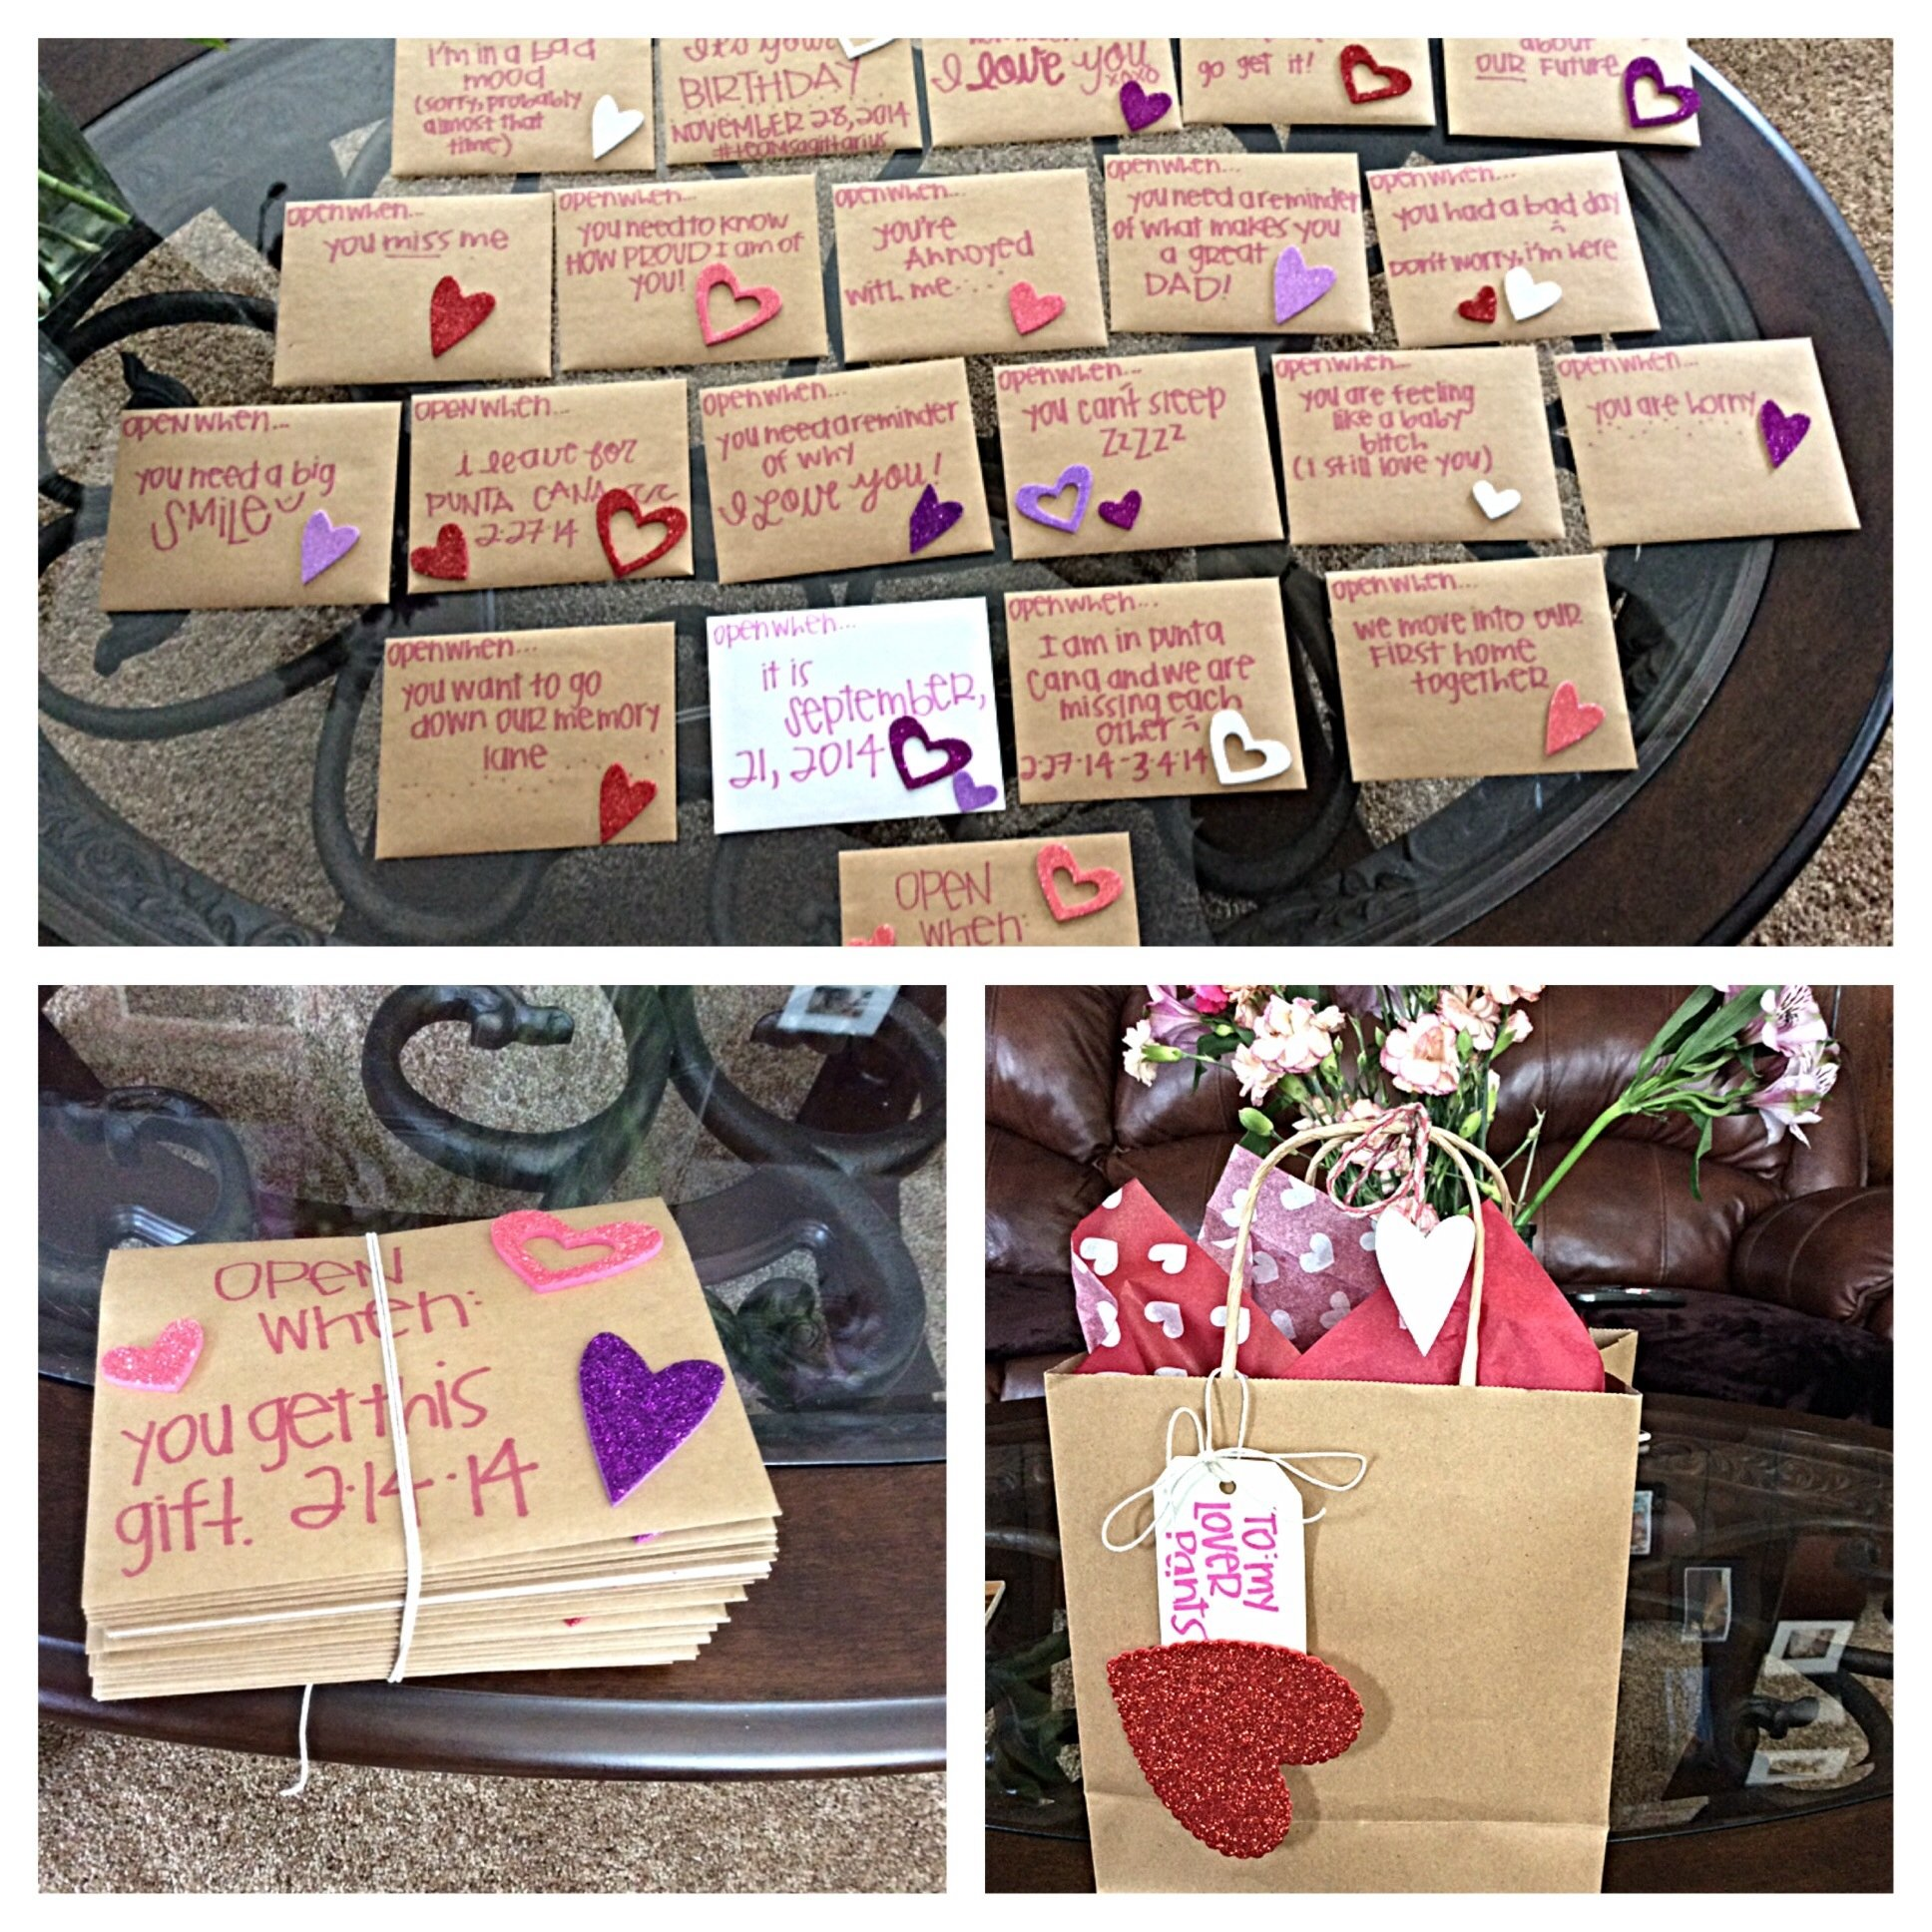 10 Most Recommended Photo Album Ideas For Boyfriend best perfect personalized valentines day gifts for 7154